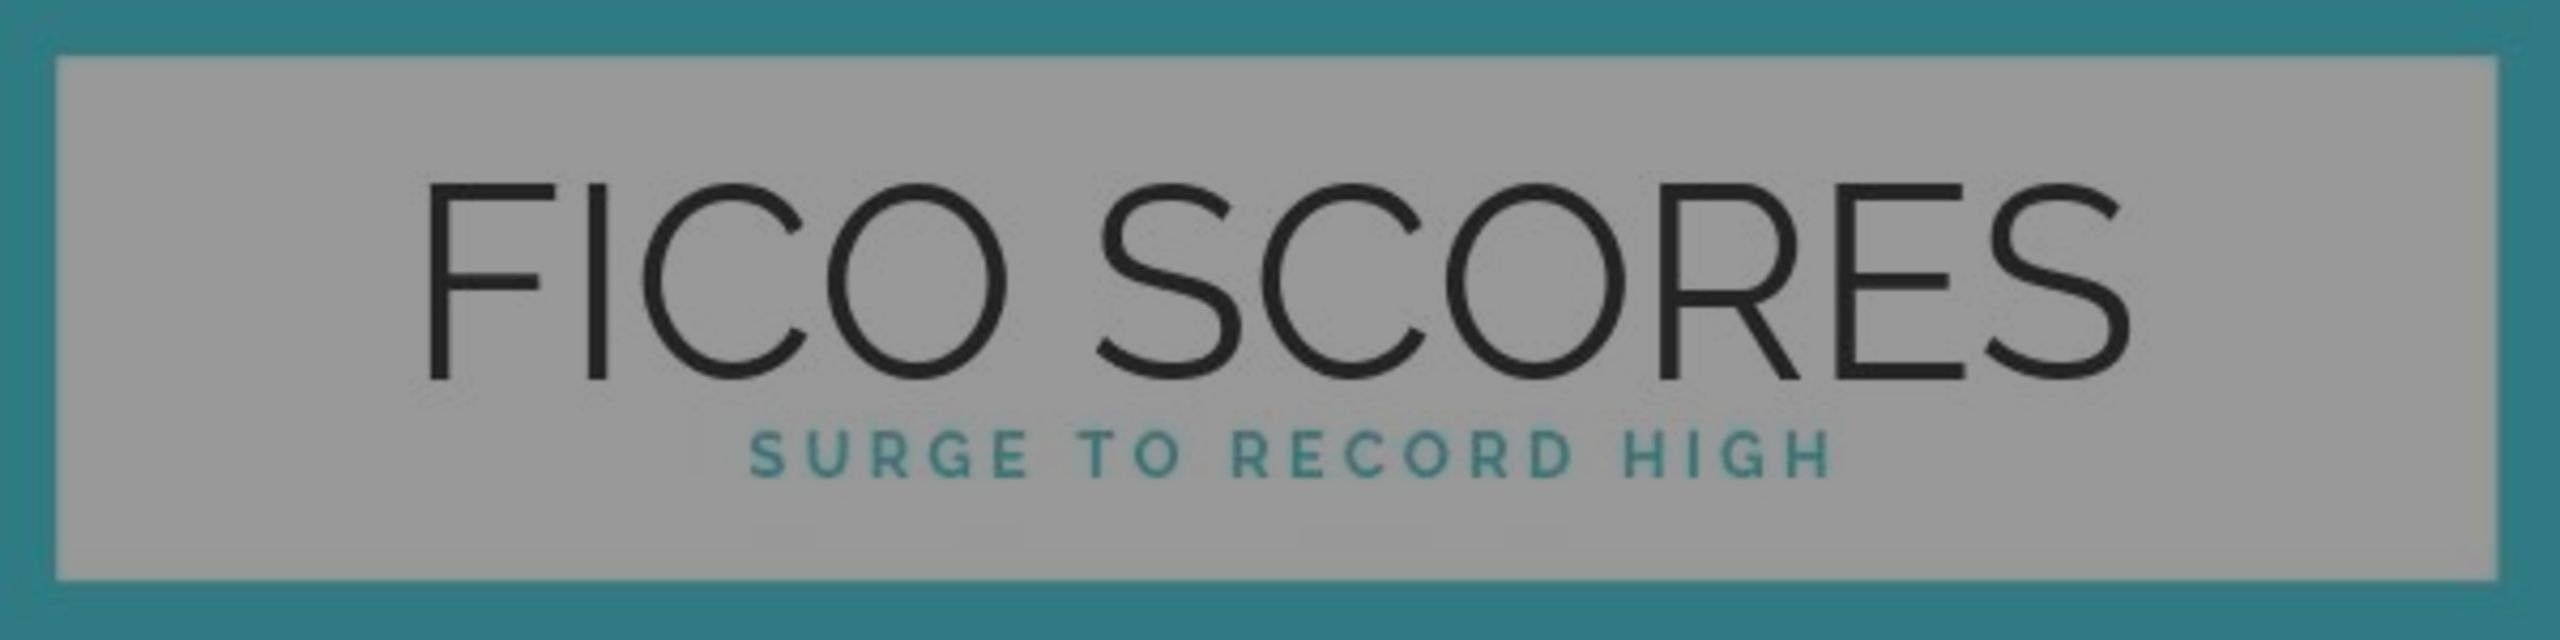 FICO Scores Surge to Record High